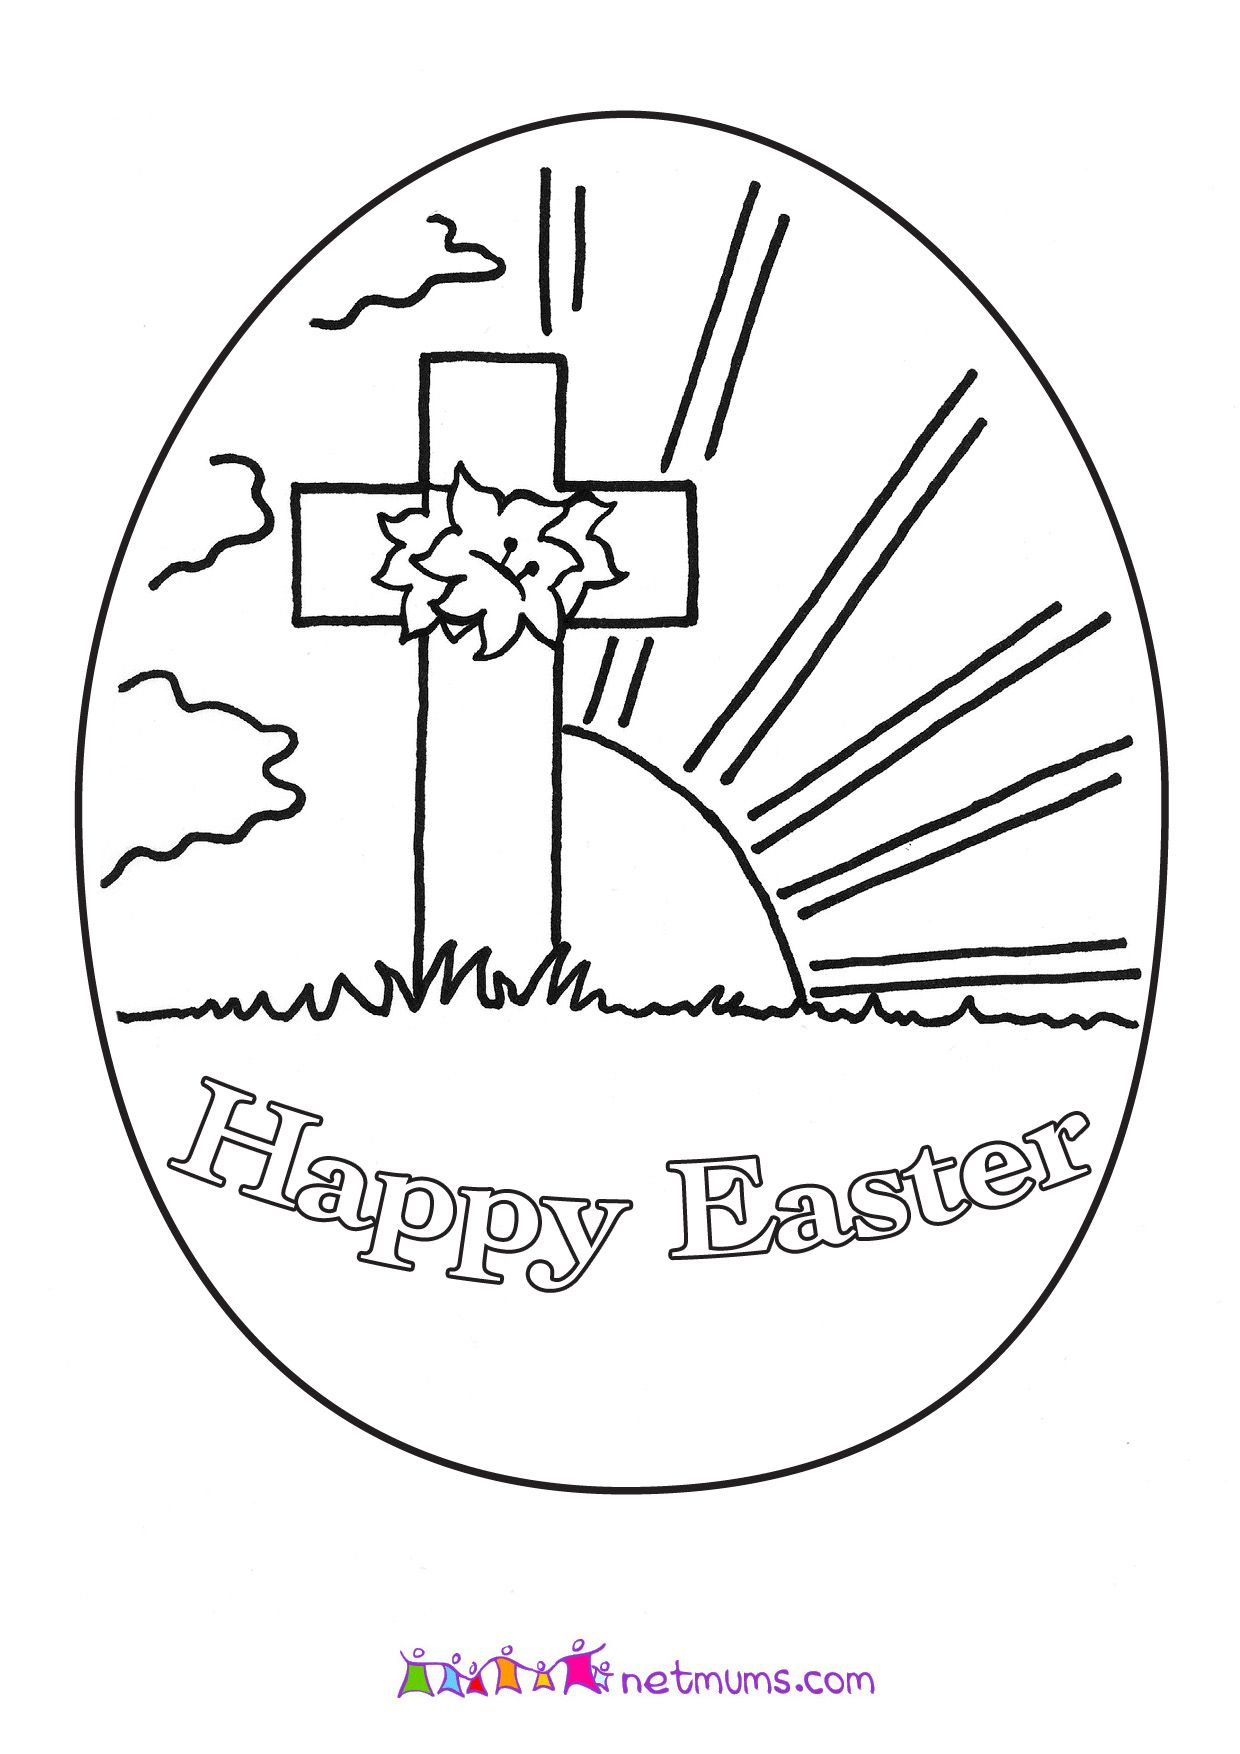 Easter Pictures To Print Off For Your Kids To Colour In